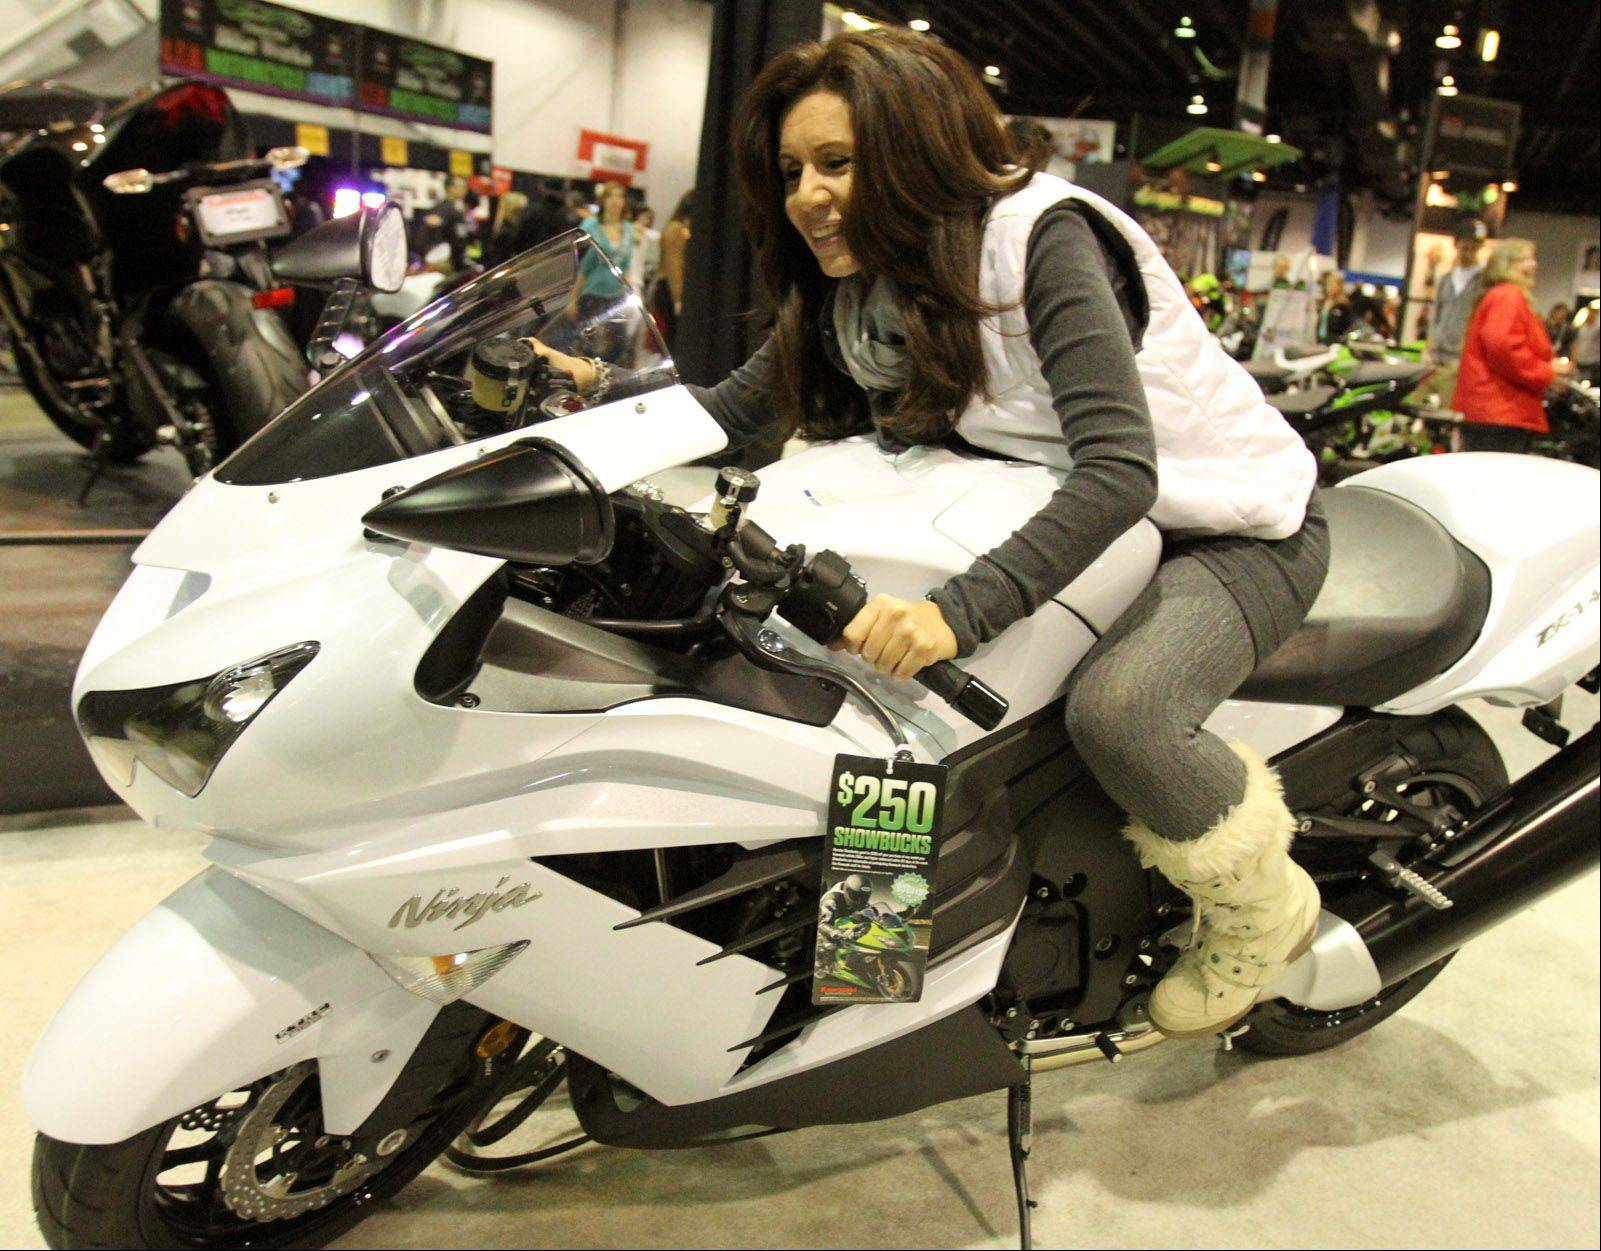 The International Motorcycle Show returns to the Donald E. Stephens Convention Center in Rosemont.